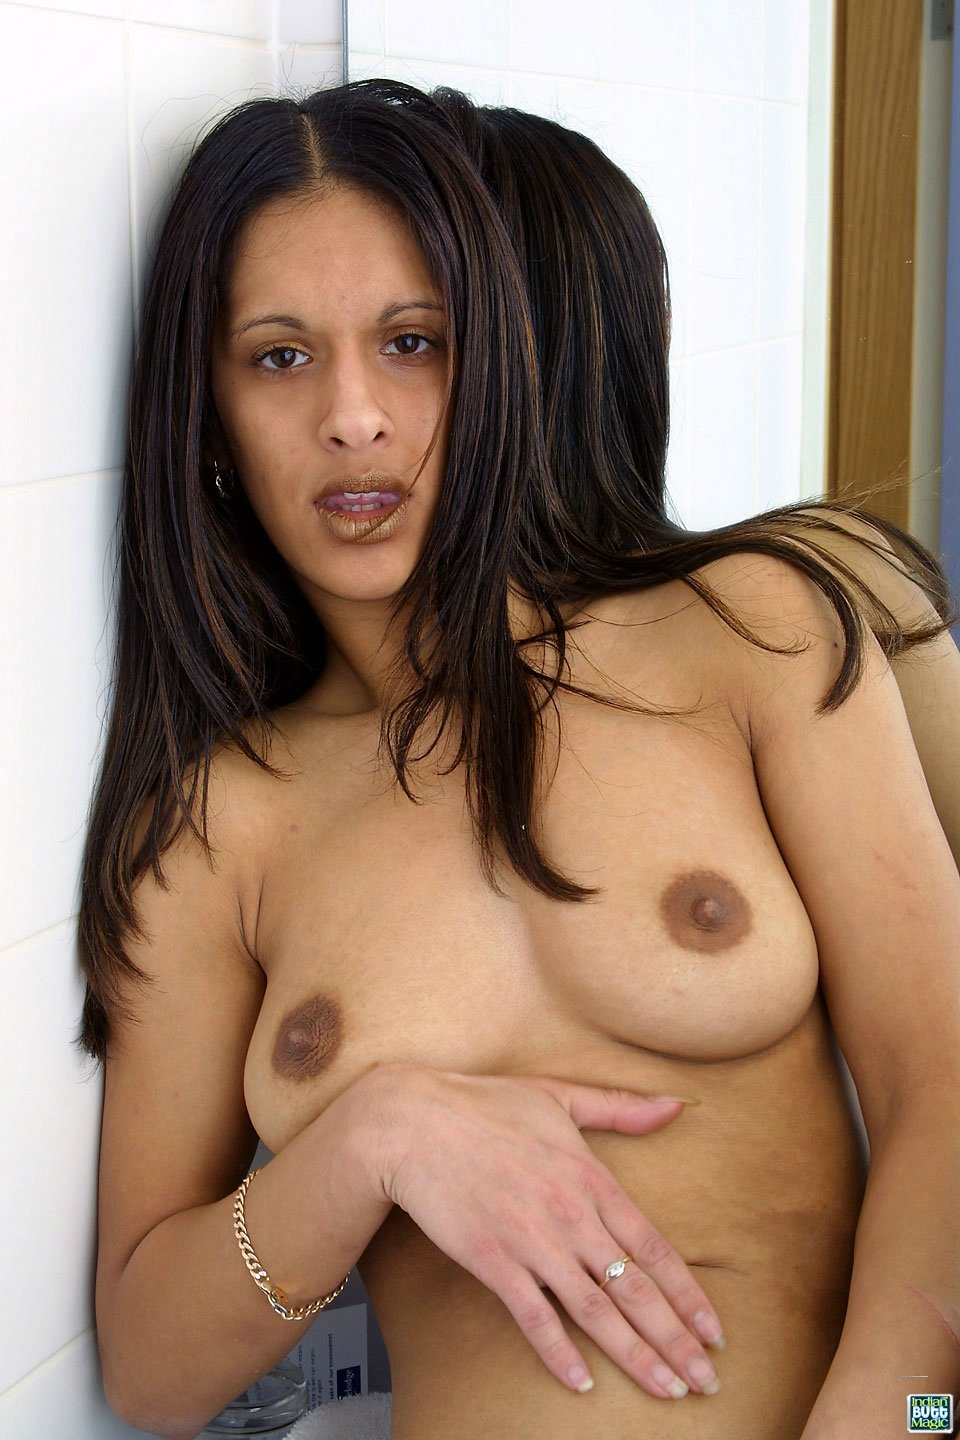 Adorable Porno En Vk adorable indian beauty with incredible pleasure caressing